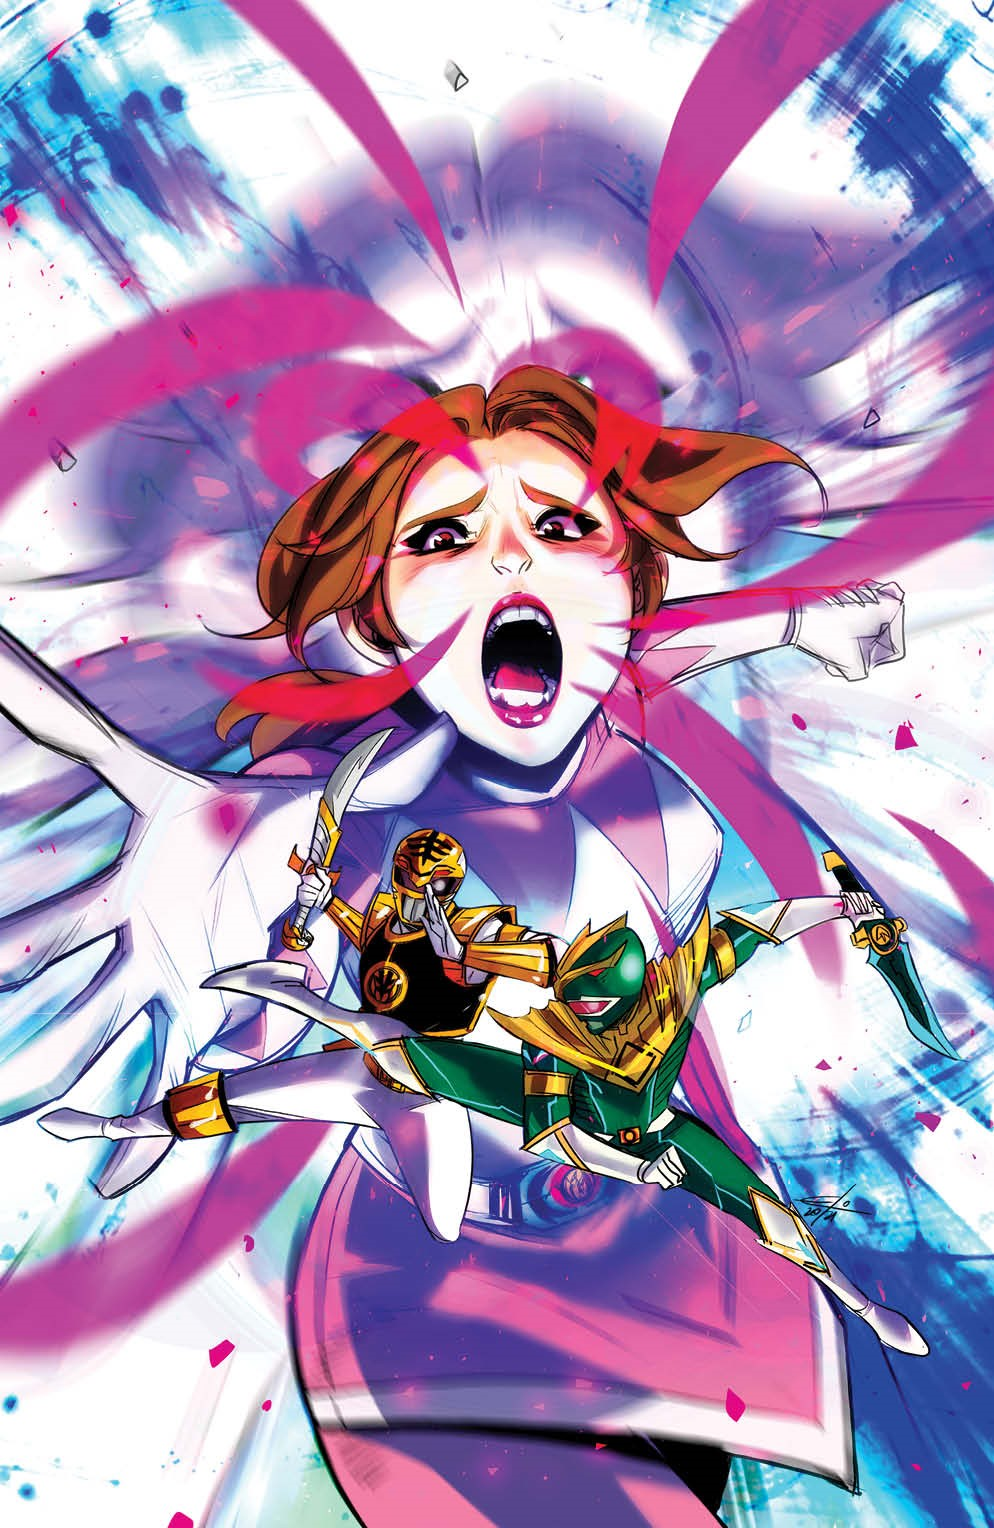 MightyMorphin_011_Cover_D_Variant_Undressed ComicList Previews: MIGHTY MORPHIN #11